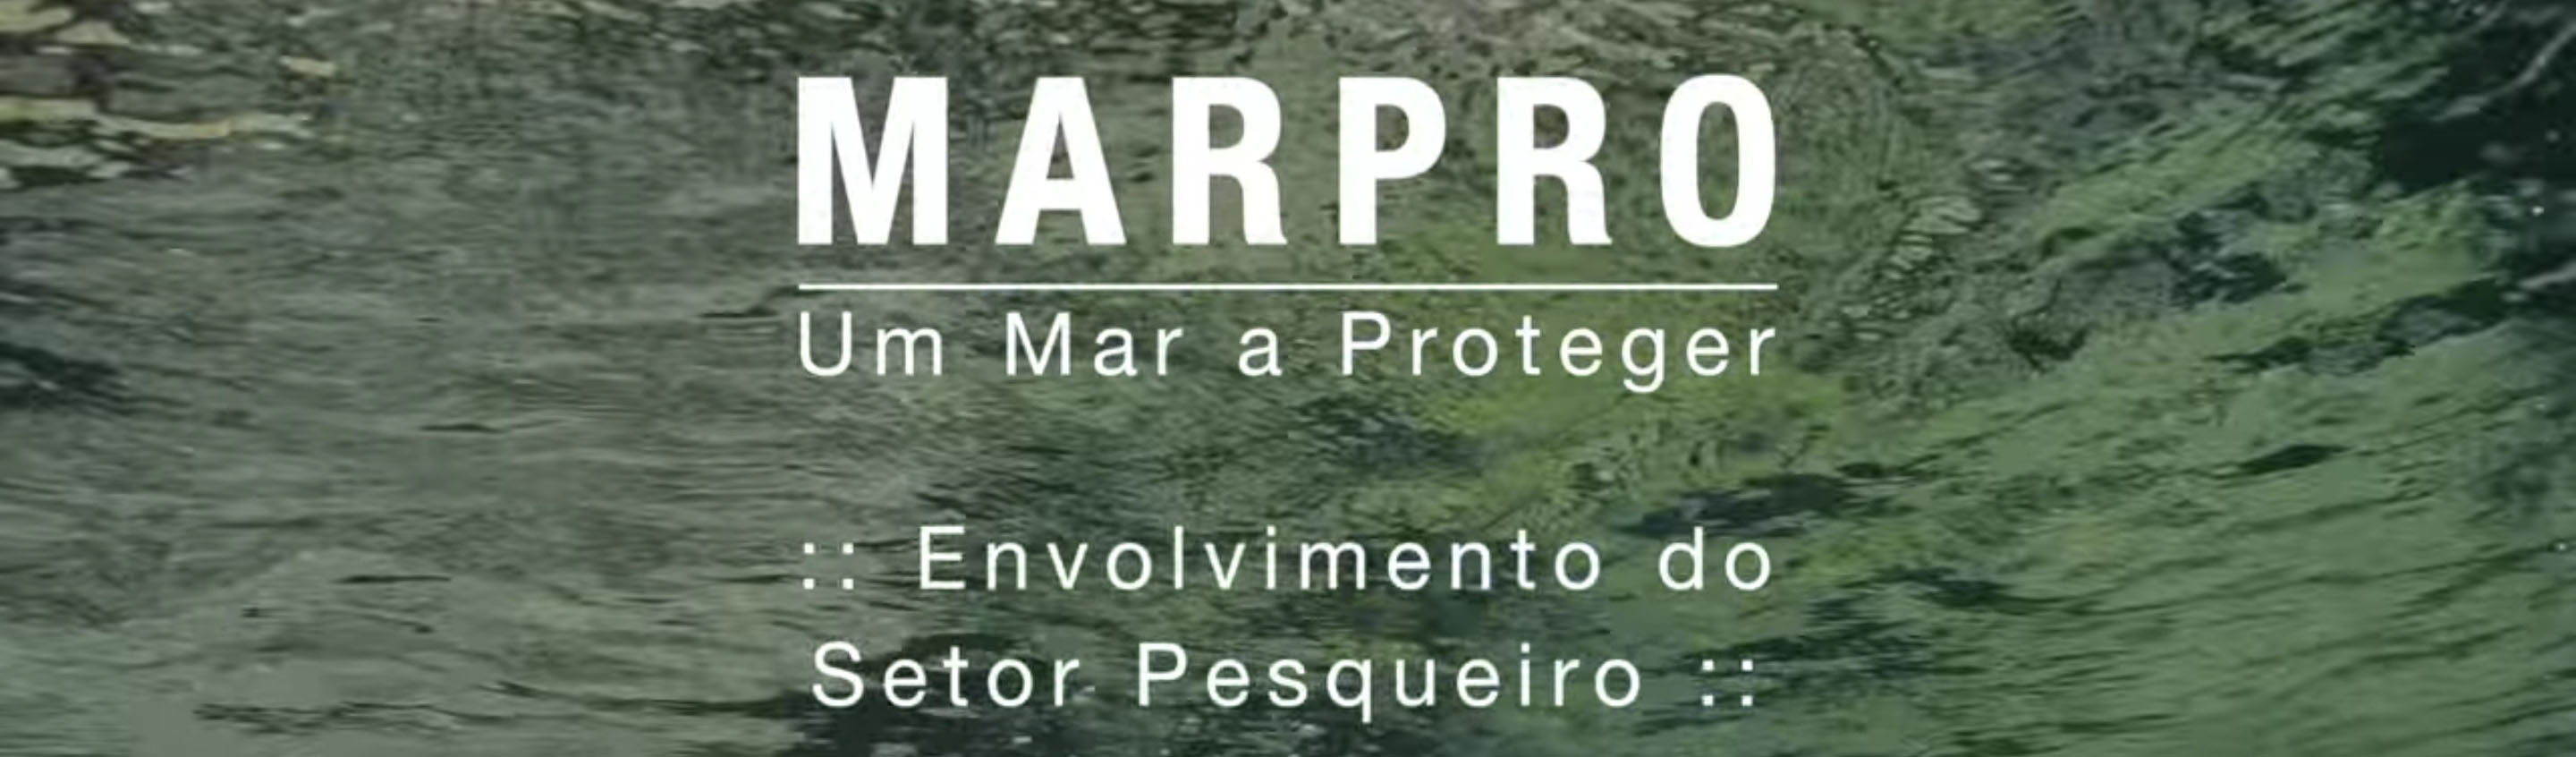 LIFE+ MarPro Documentary - Teaser 2: Fishing Industry Involvement